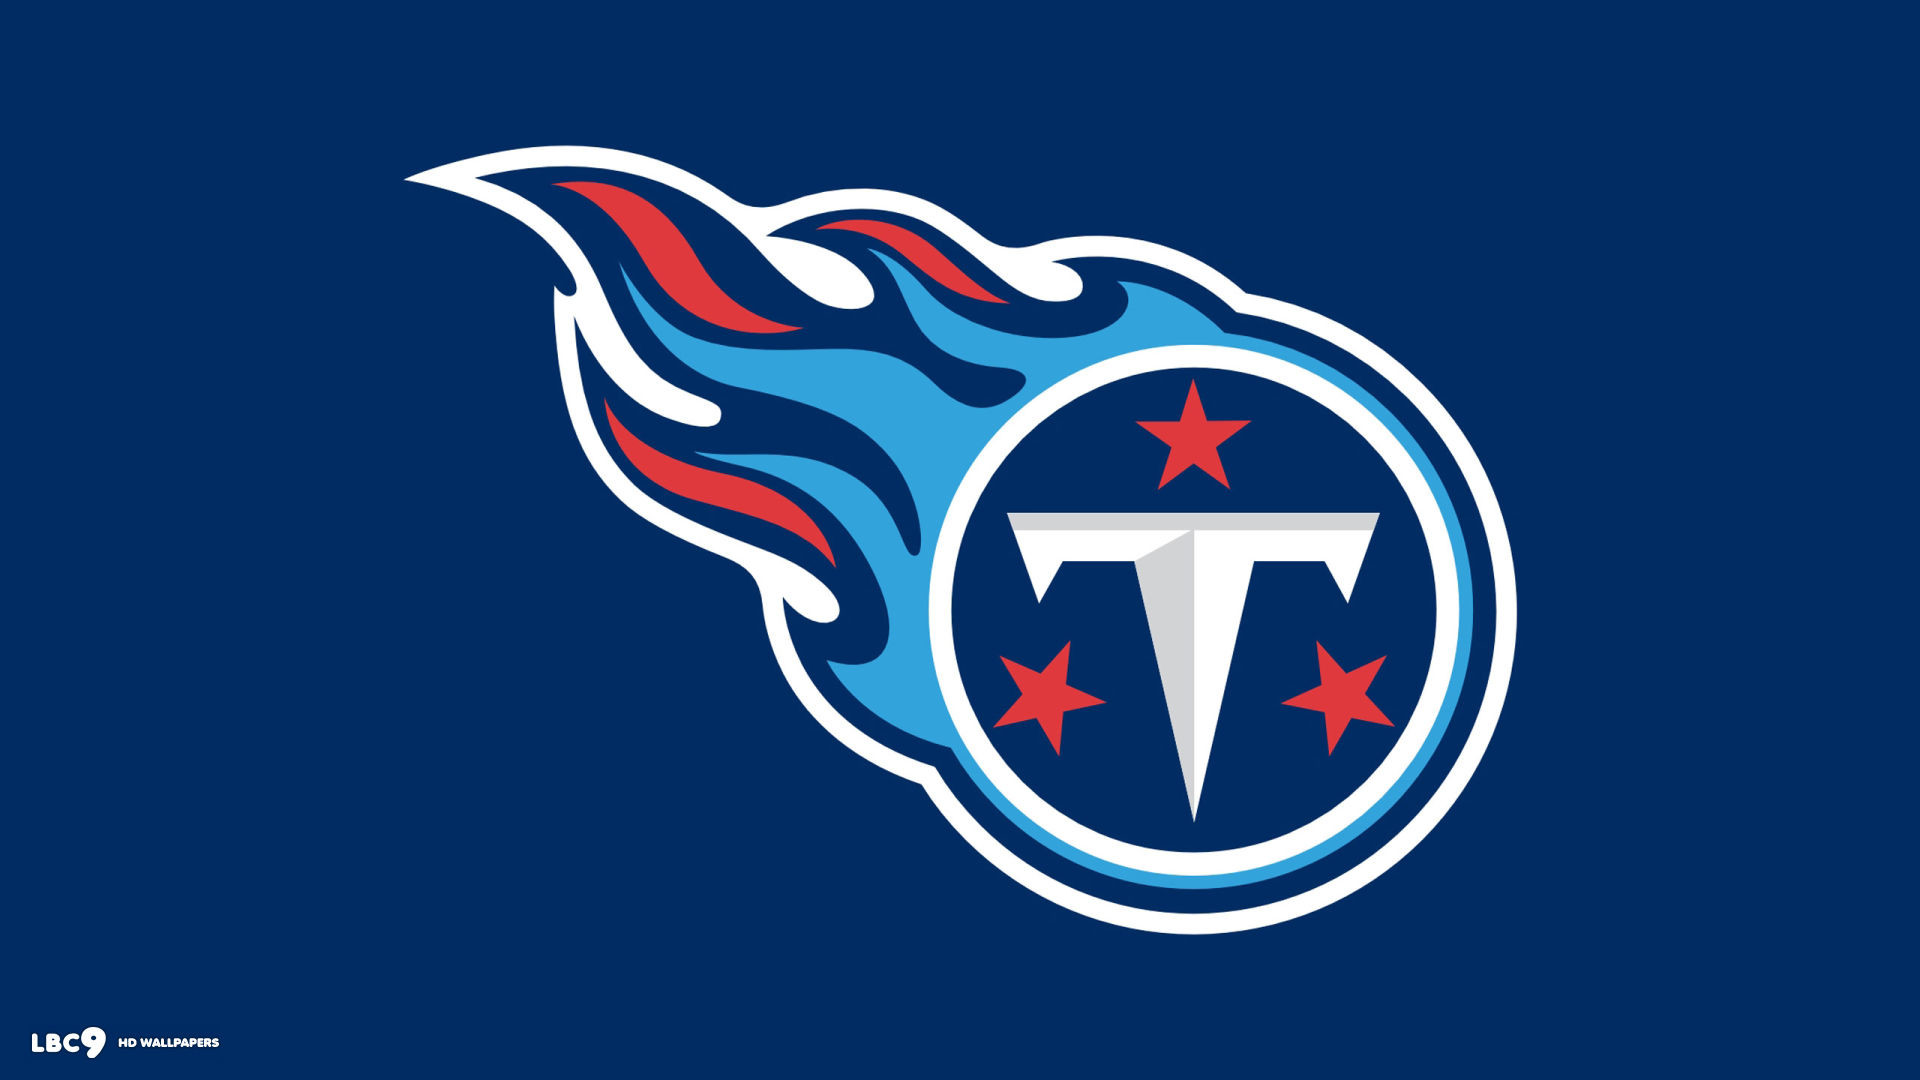 nfl team logos wallpaper 52 images